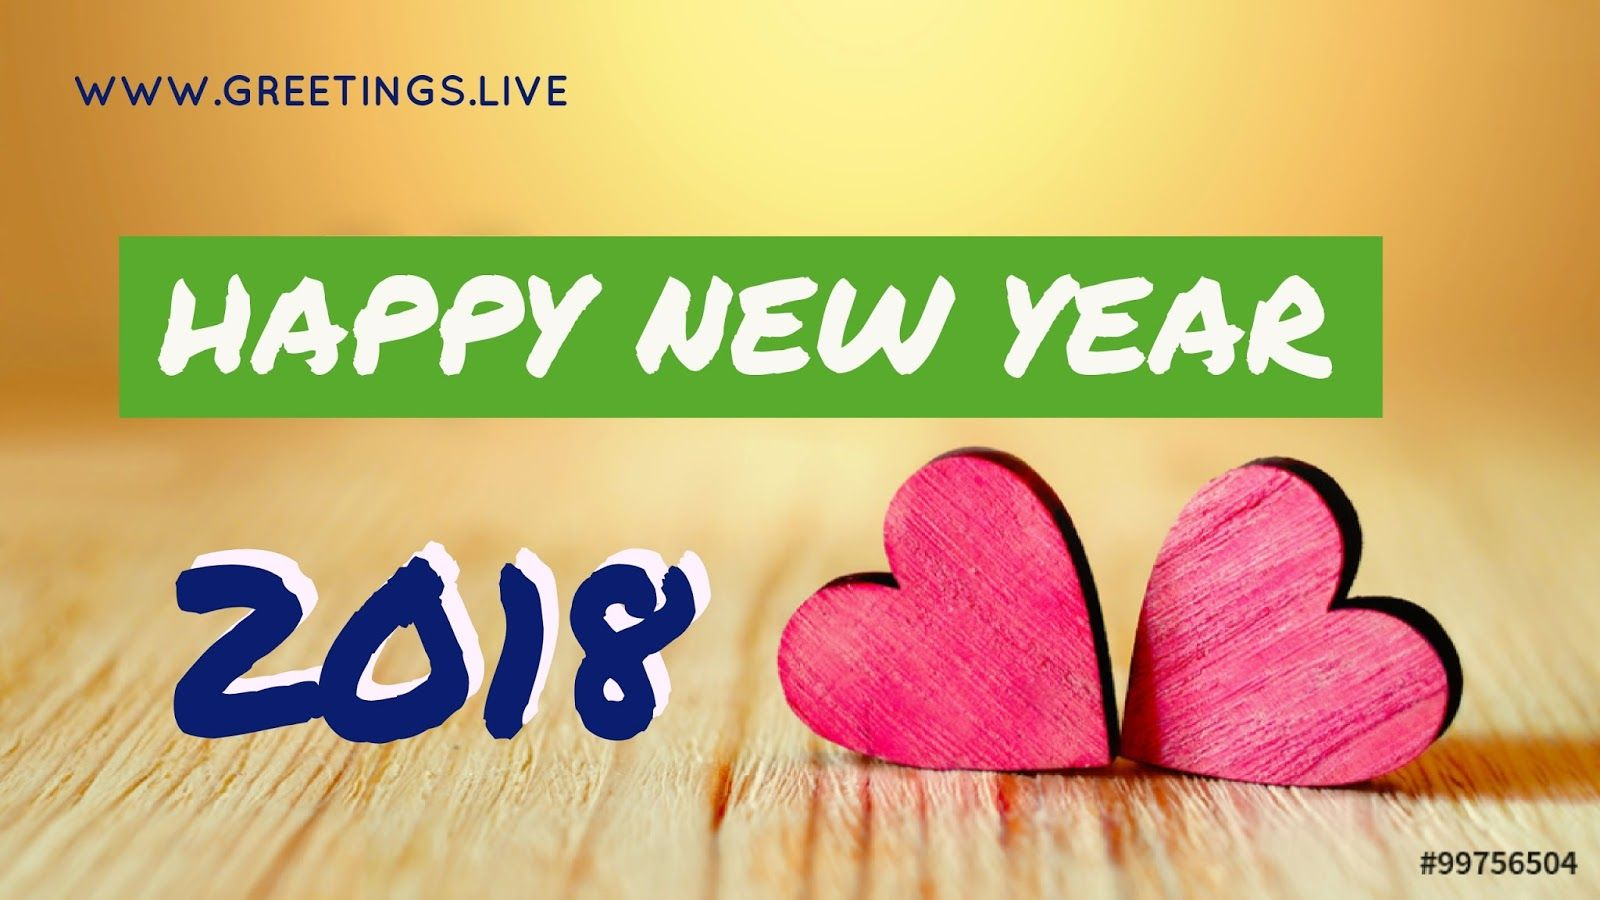 Lovely Happy New Year 2018 Greetings In English Language